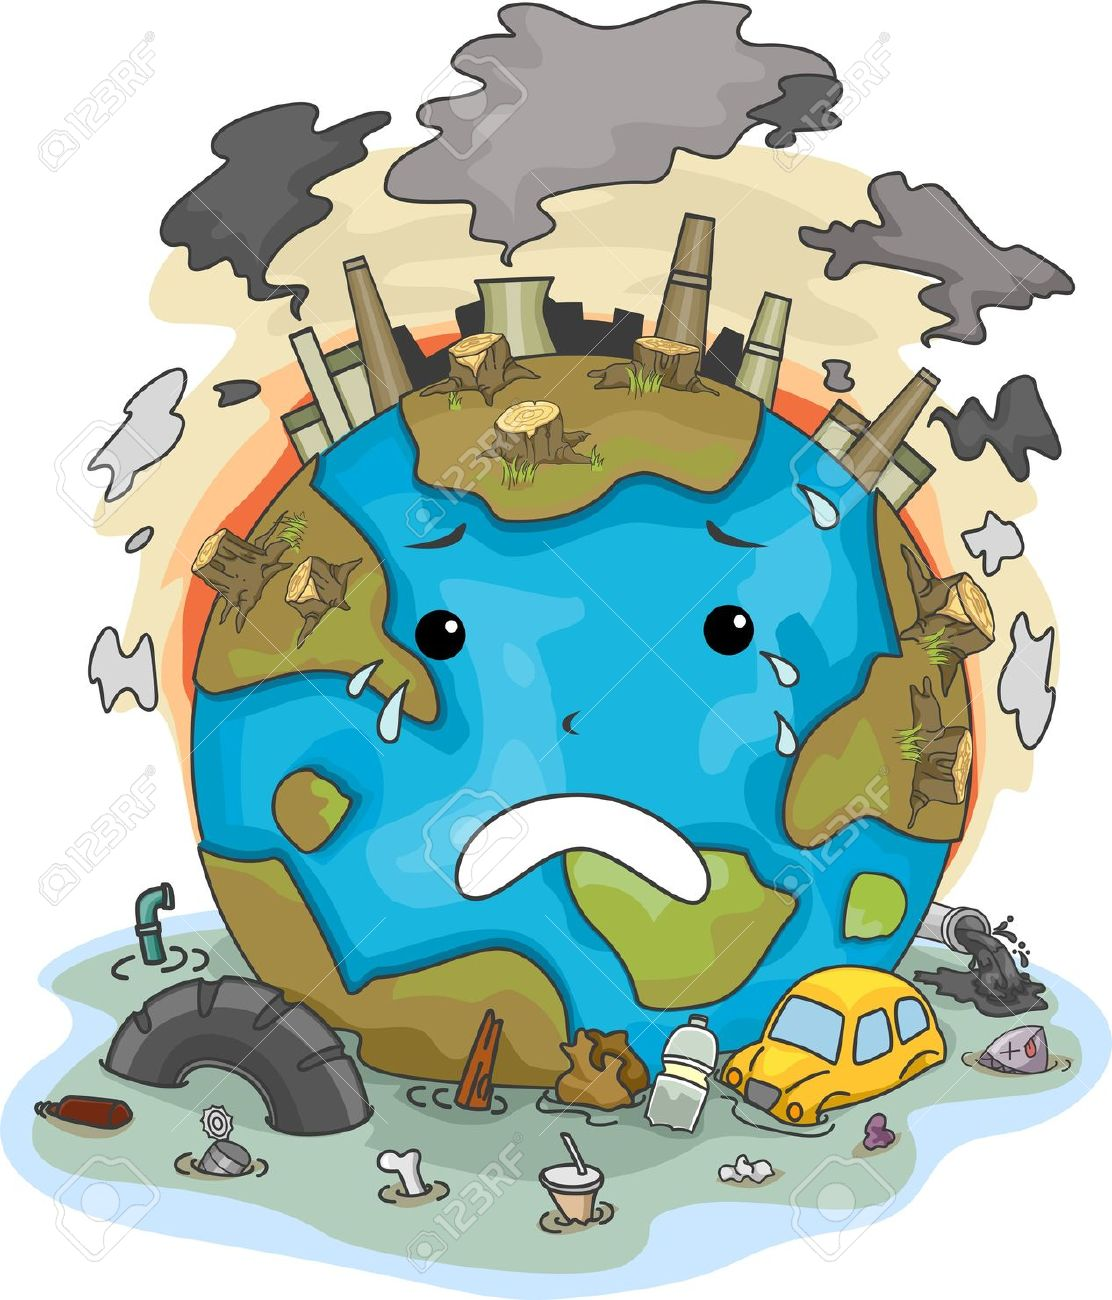 Pollution clipart unclean environment  R's The on 3